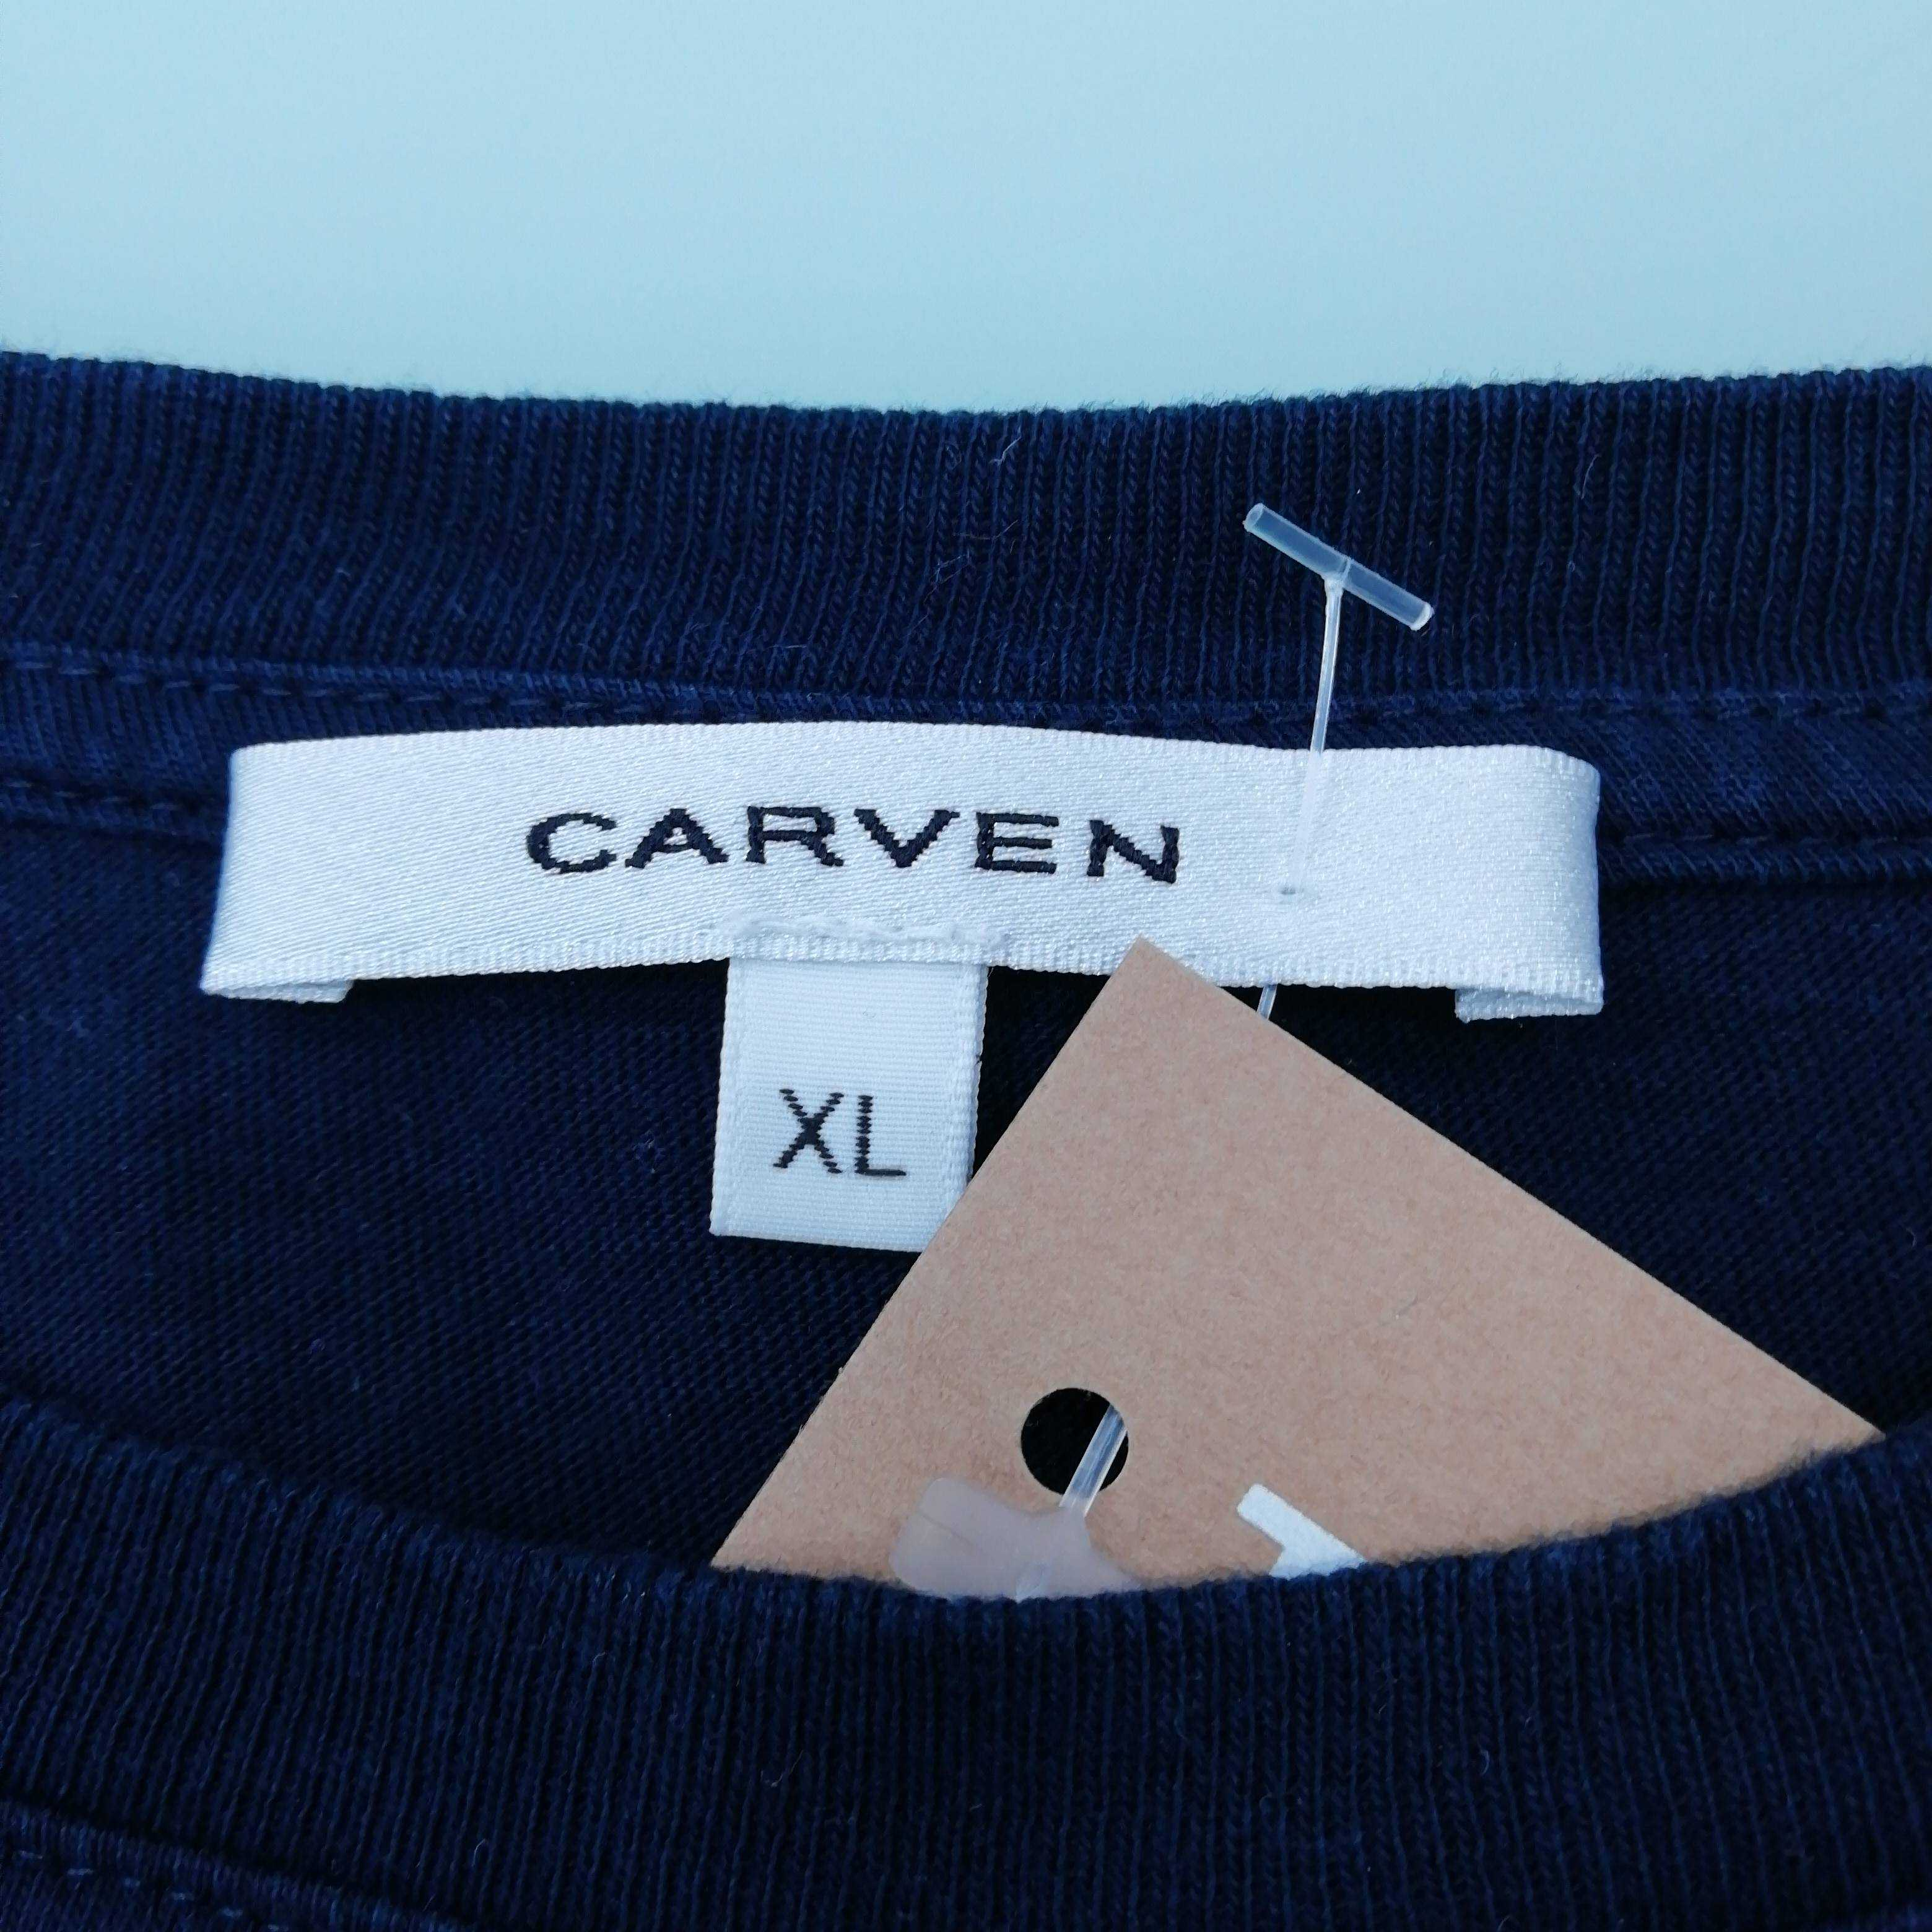 Carven Men's Short Sleeve T-Shirt XL